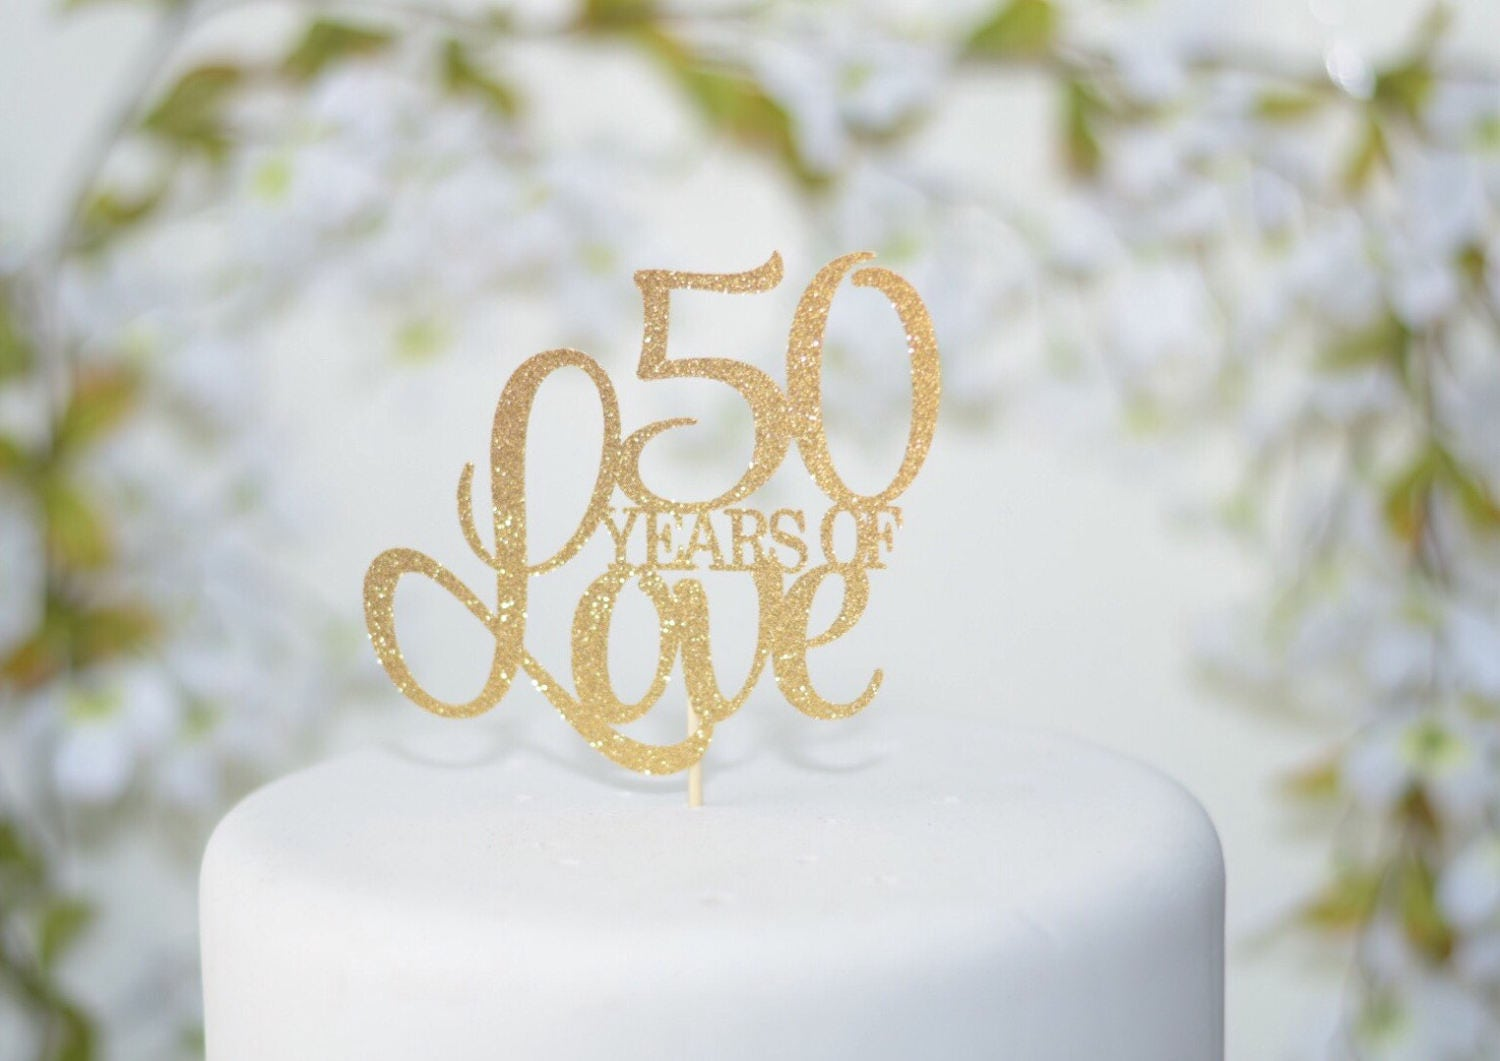 50th Wedding Anniversary Cakes.50th Wedding Anniversary Cake Topper 50th Birthday Cake Topper 25th Wedding Anniversary Cake Topper 30th Anniversary 10th Anniversar